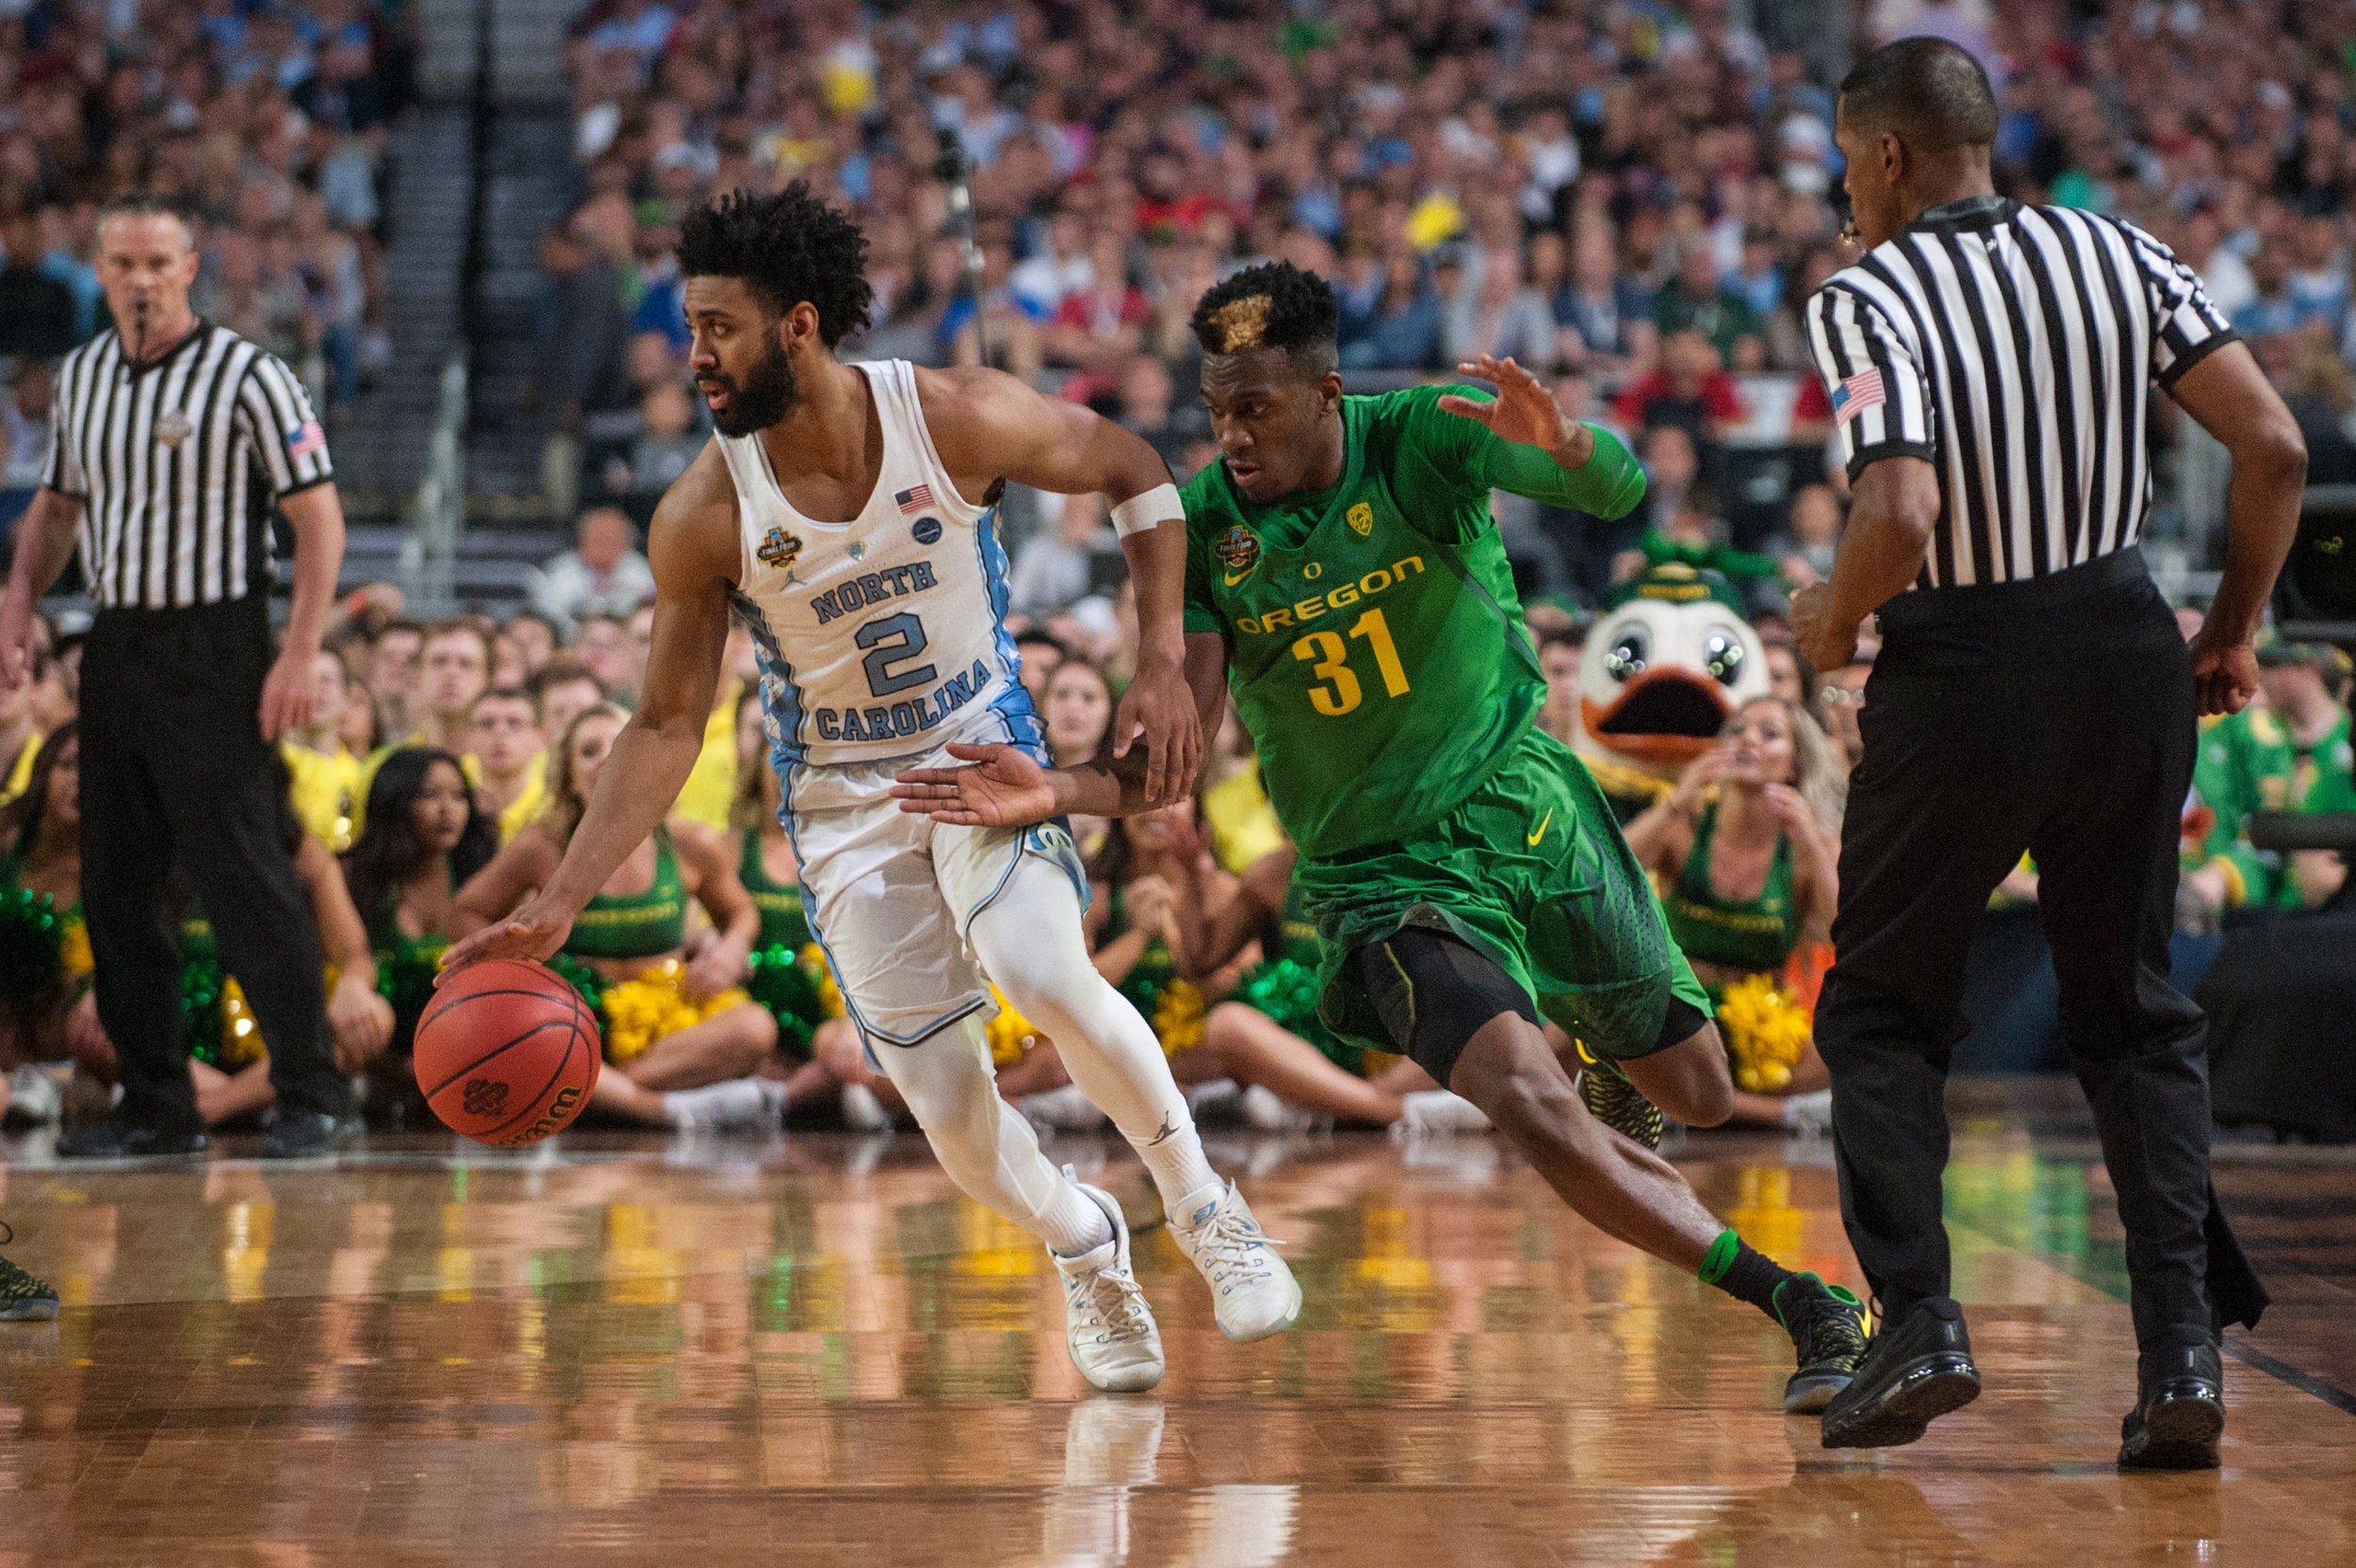 17.03.31.emg.an.final.four.oregon.vs.north.carolina-25.jpg